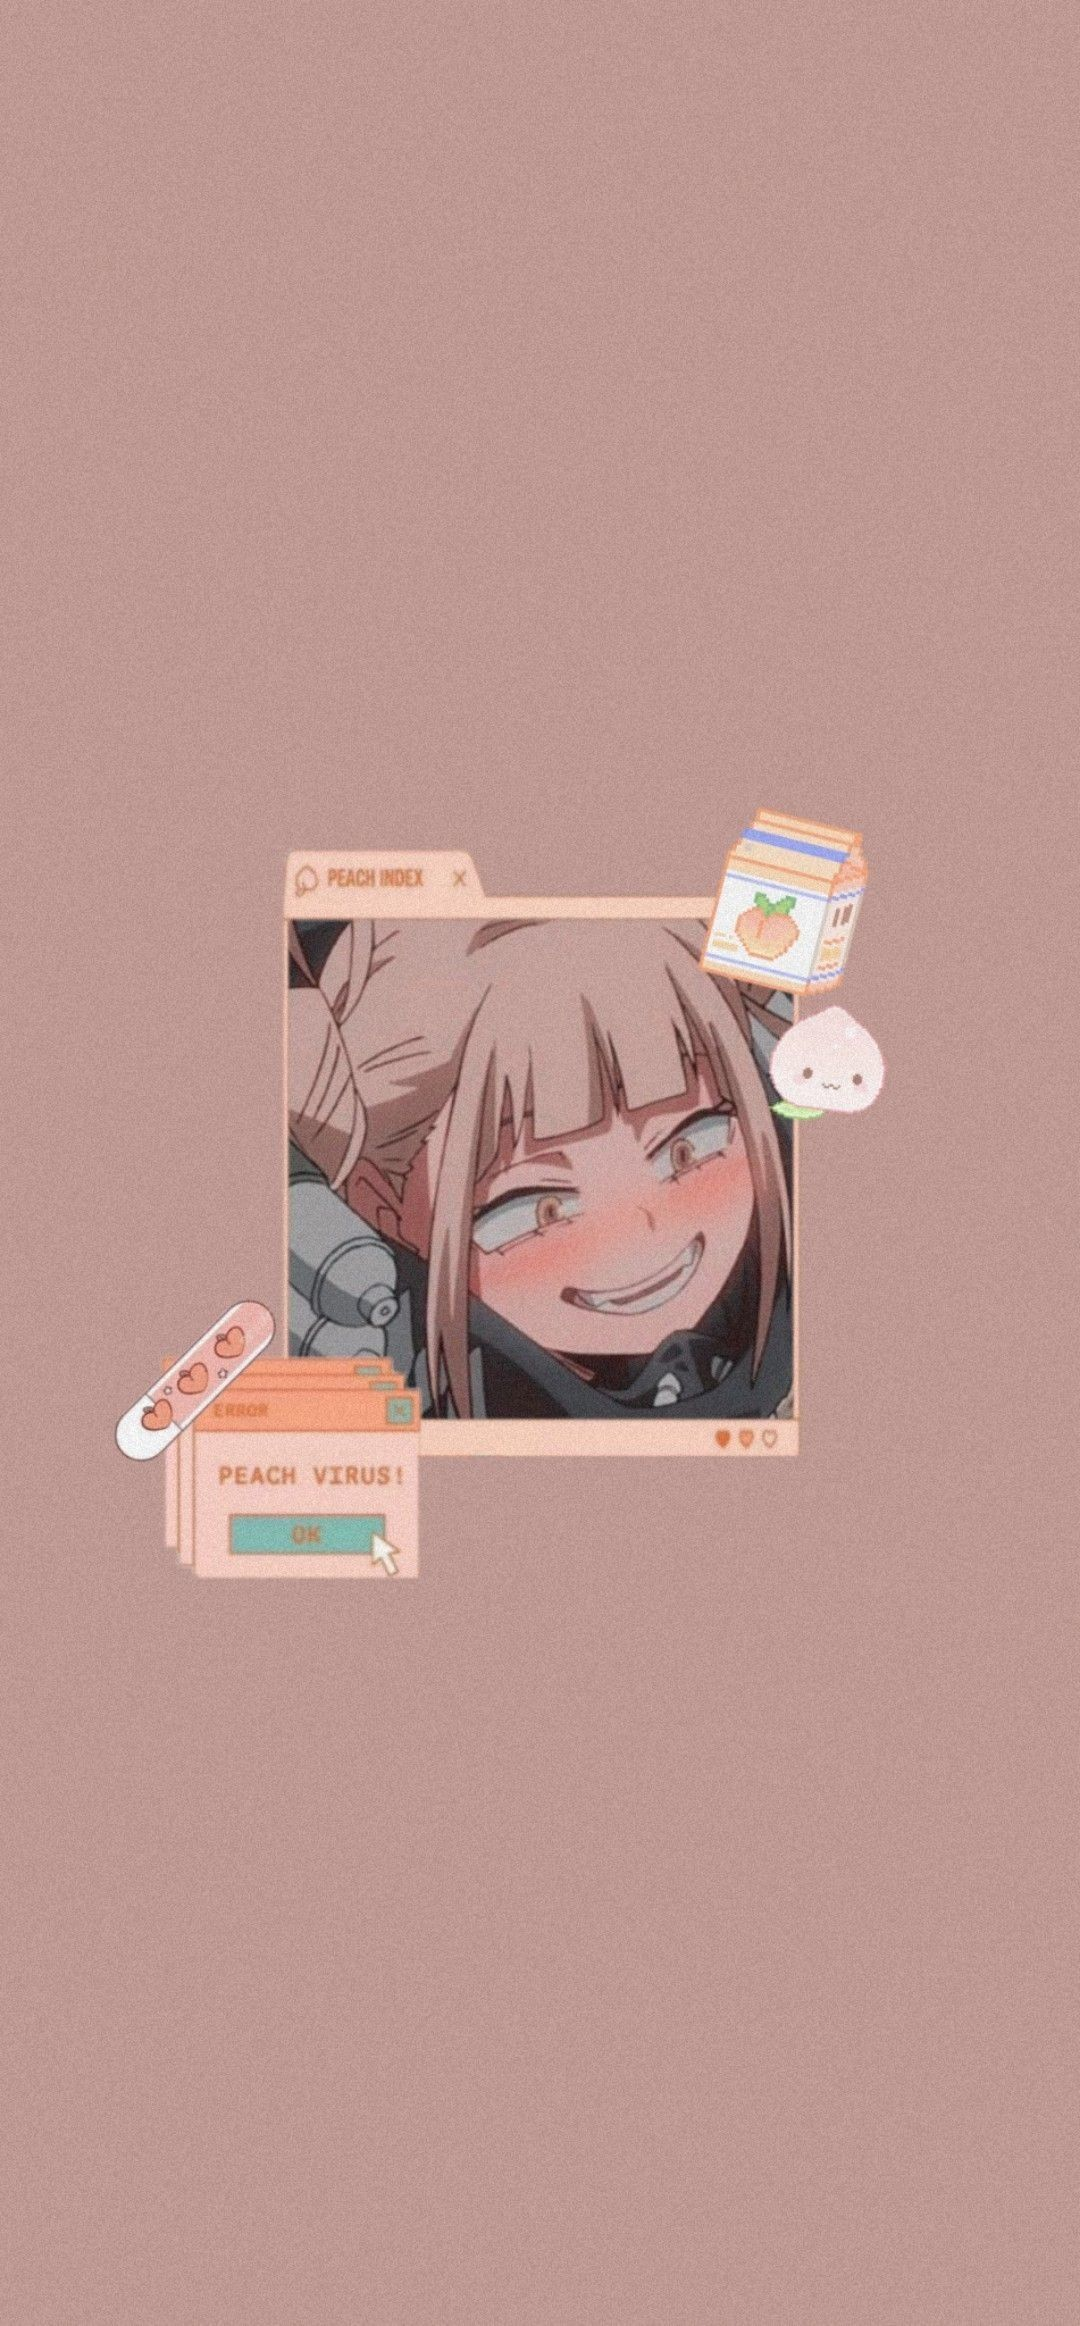 Toga Himiko In 2021 Cool Anime Wallpapers Anime Wallpaper Cute Anime Wallpaper